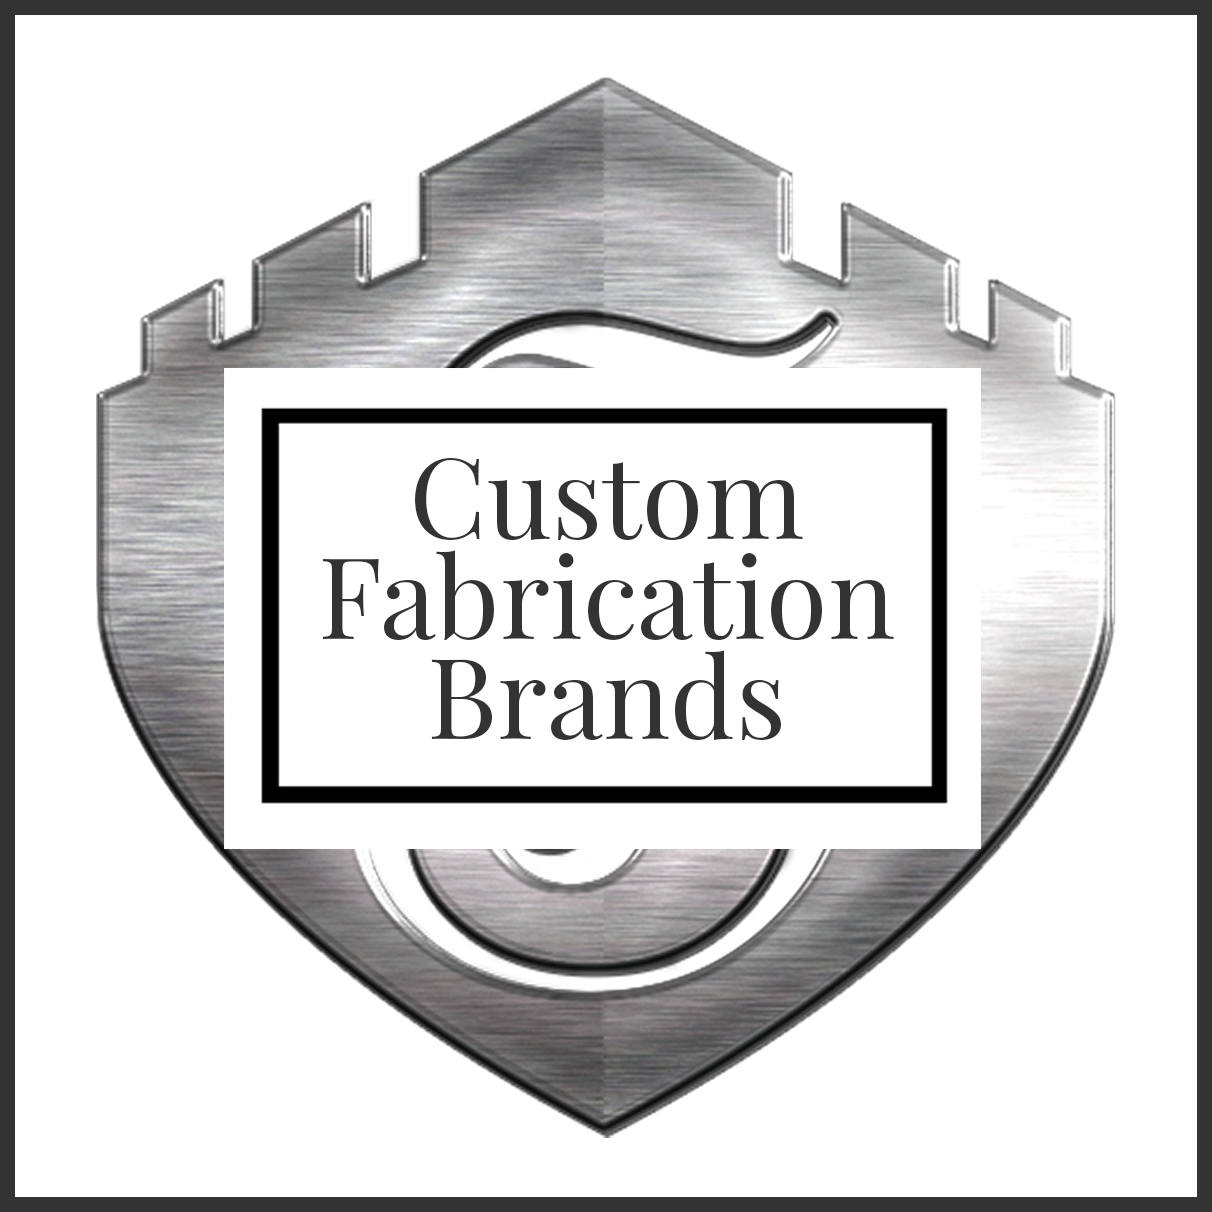 Custom Fabrication Brands